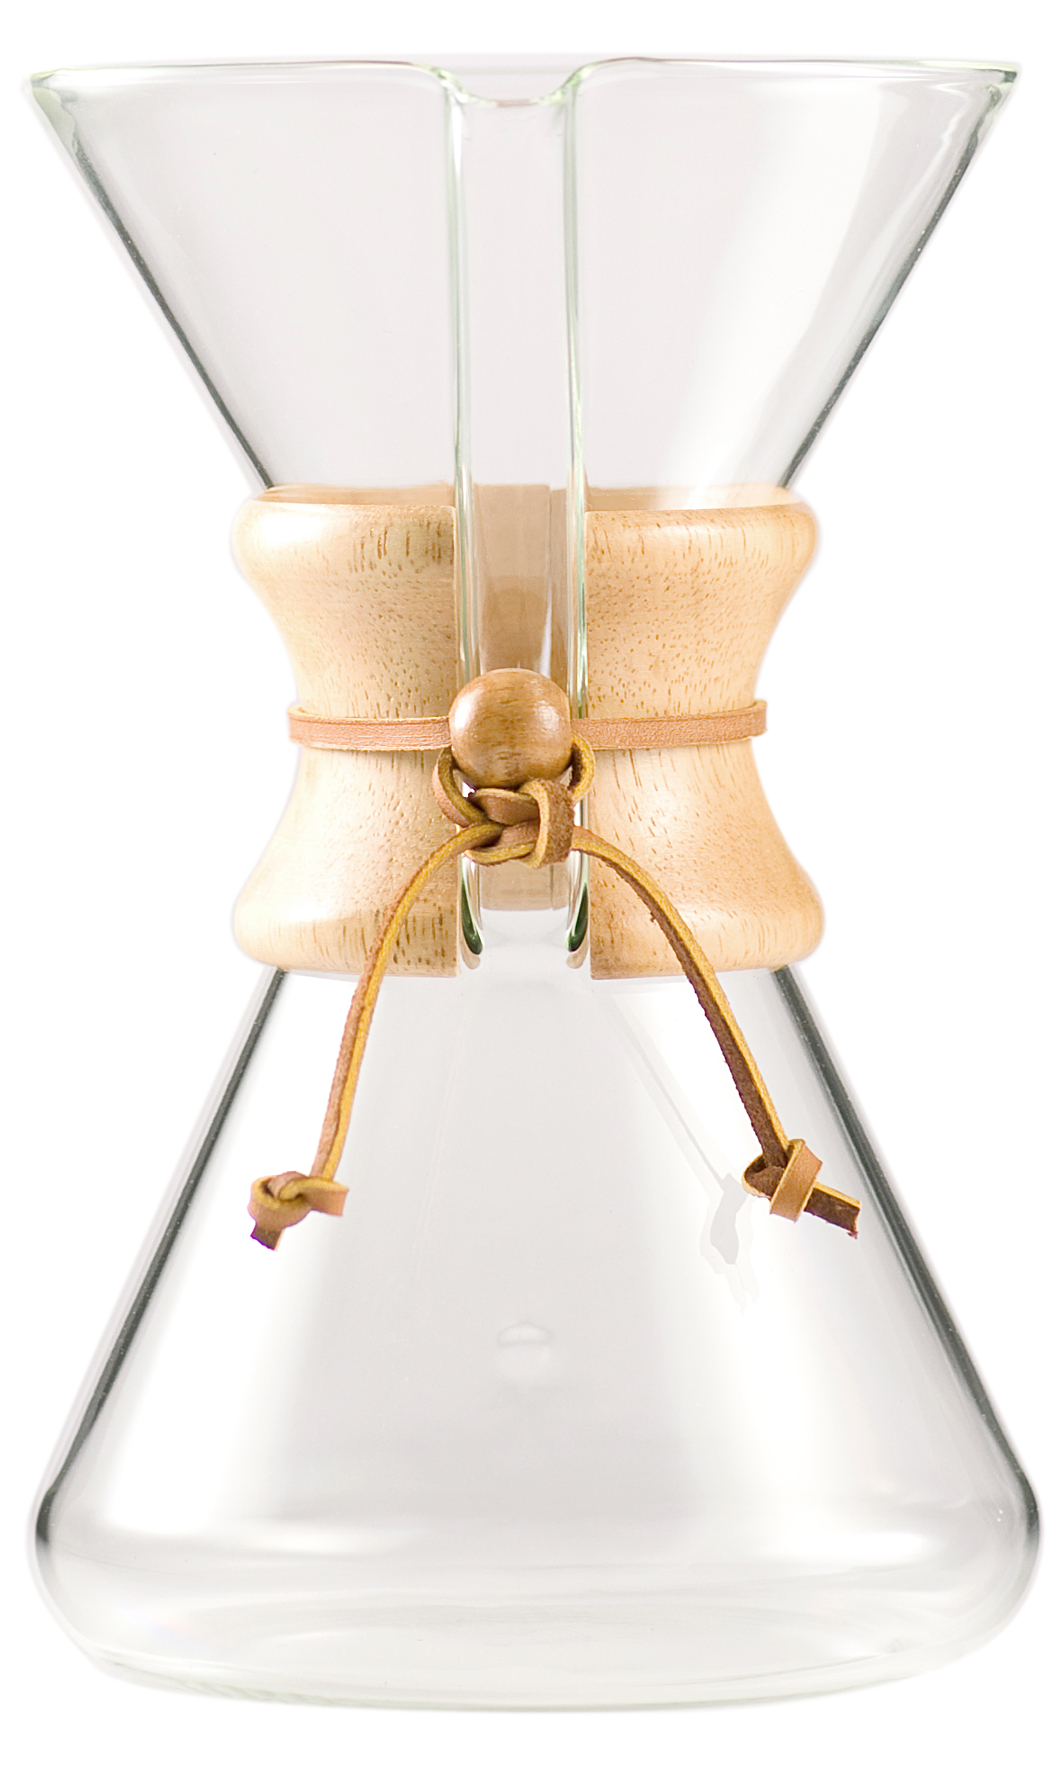 Chemex Hand Blown Glass Coffee Maker with Wood Collar and Tie, 40 Ounce